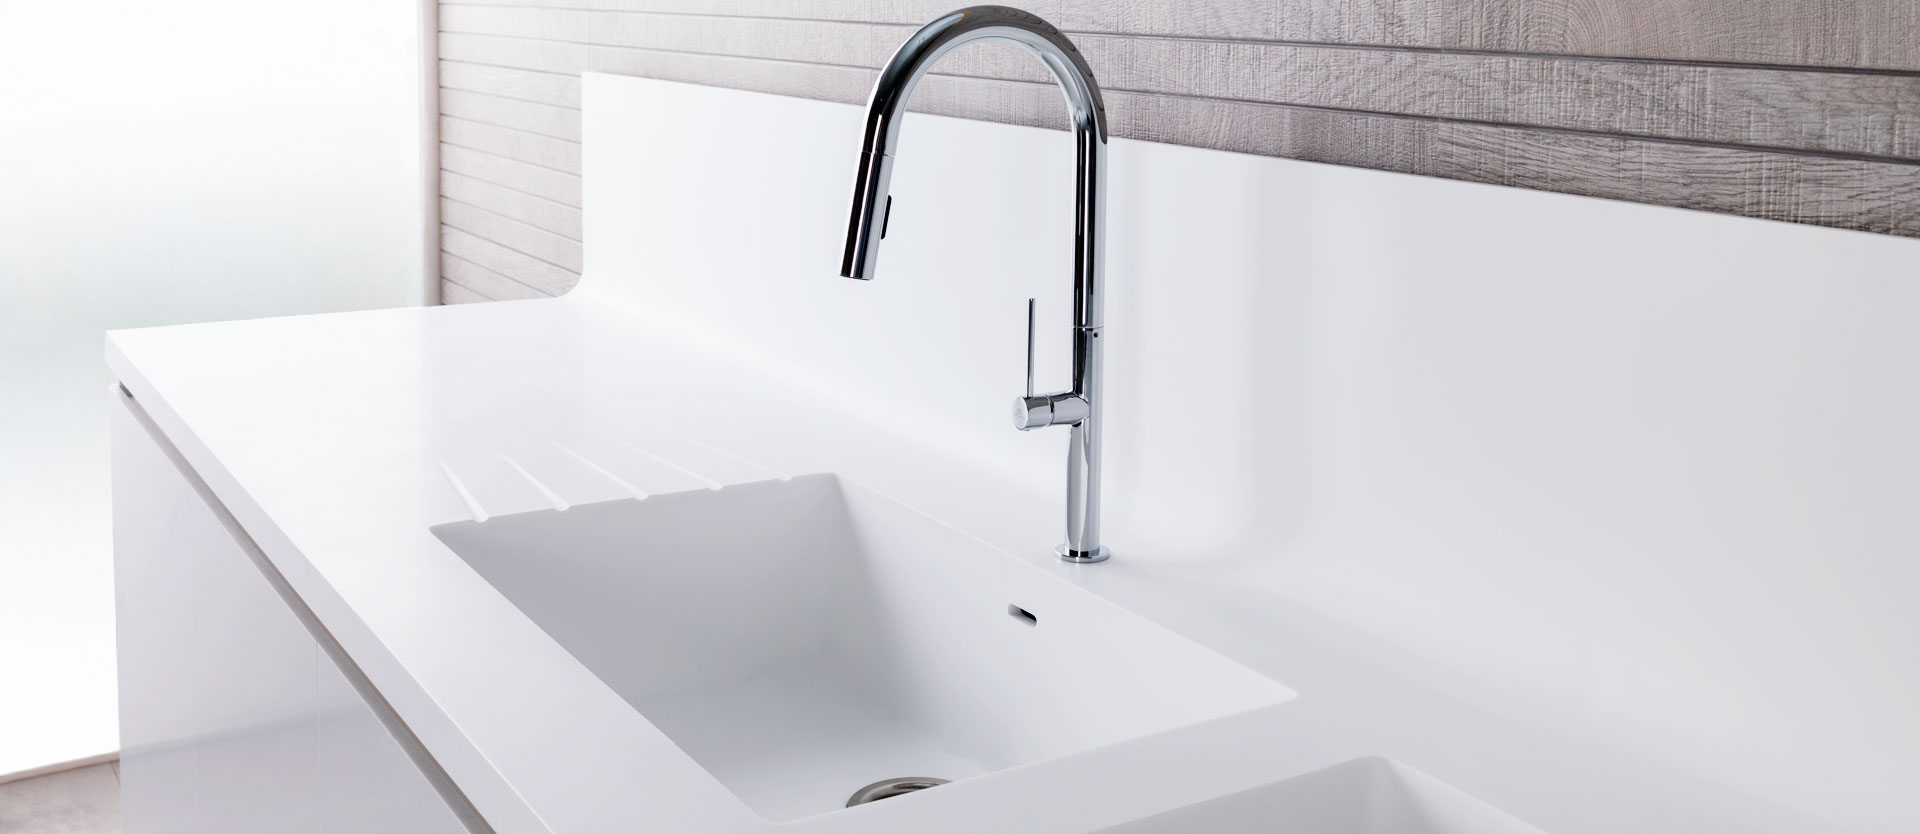 solid surface kitchen sinks | solid surface krion®